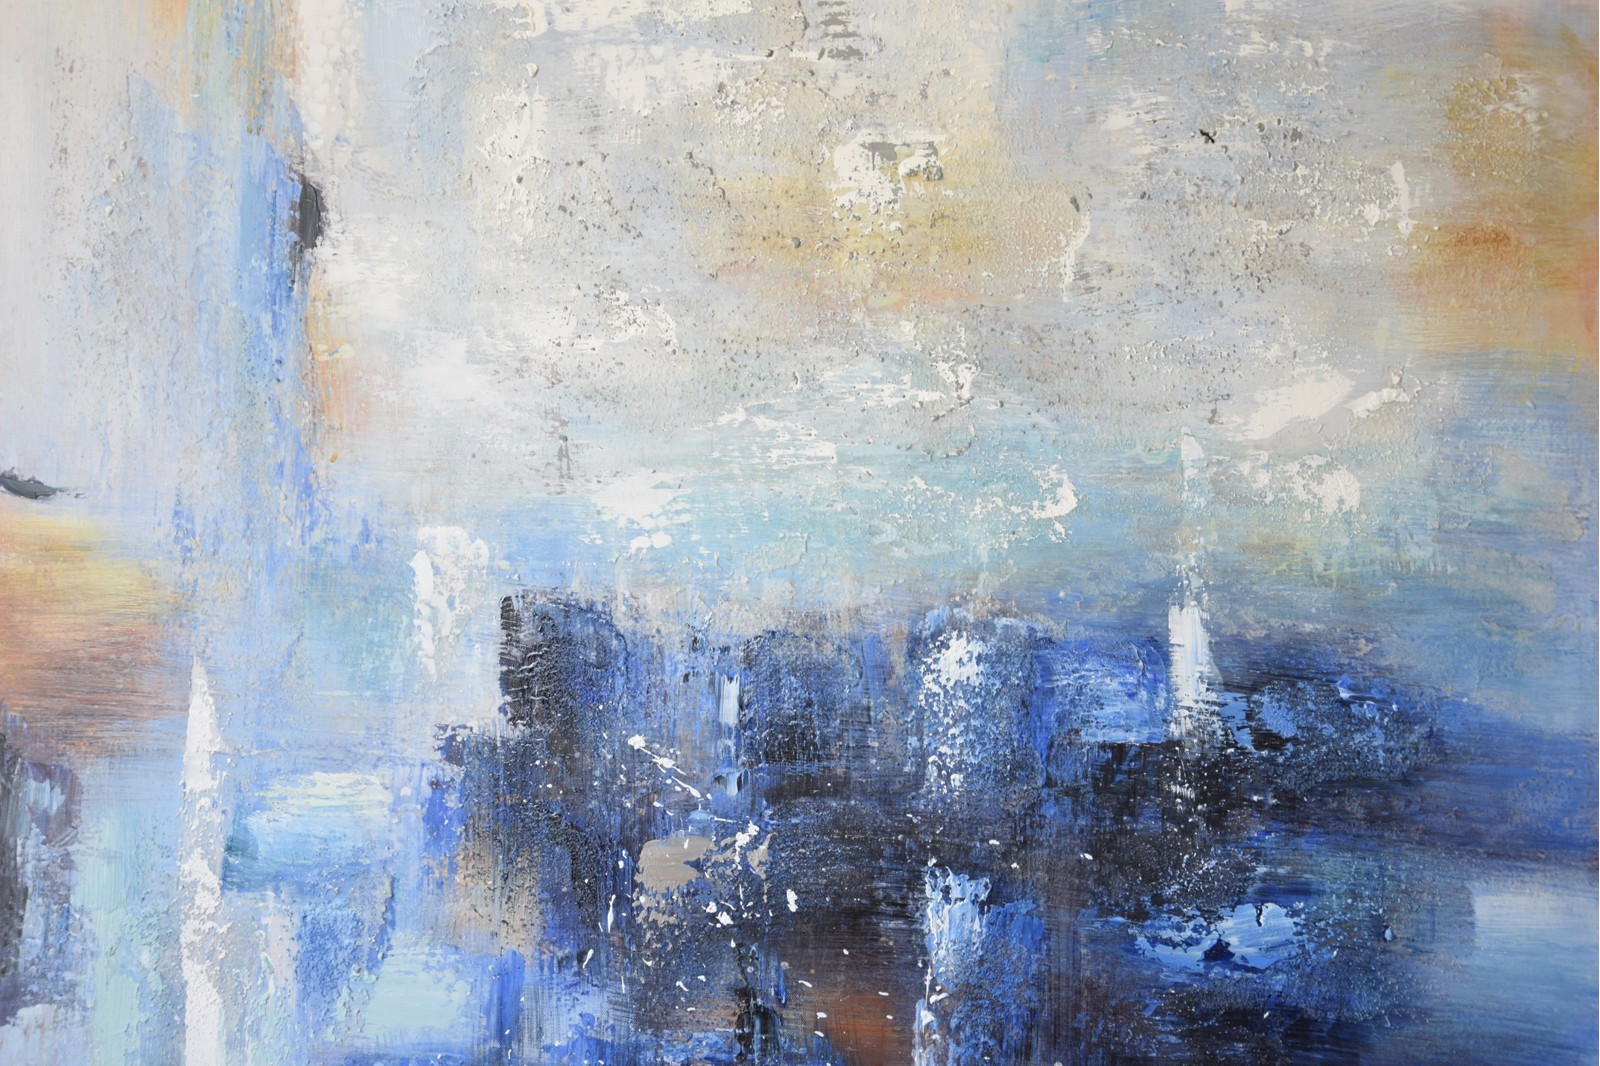 ABSTRACT PAINTING OCEAN WITH FRAME